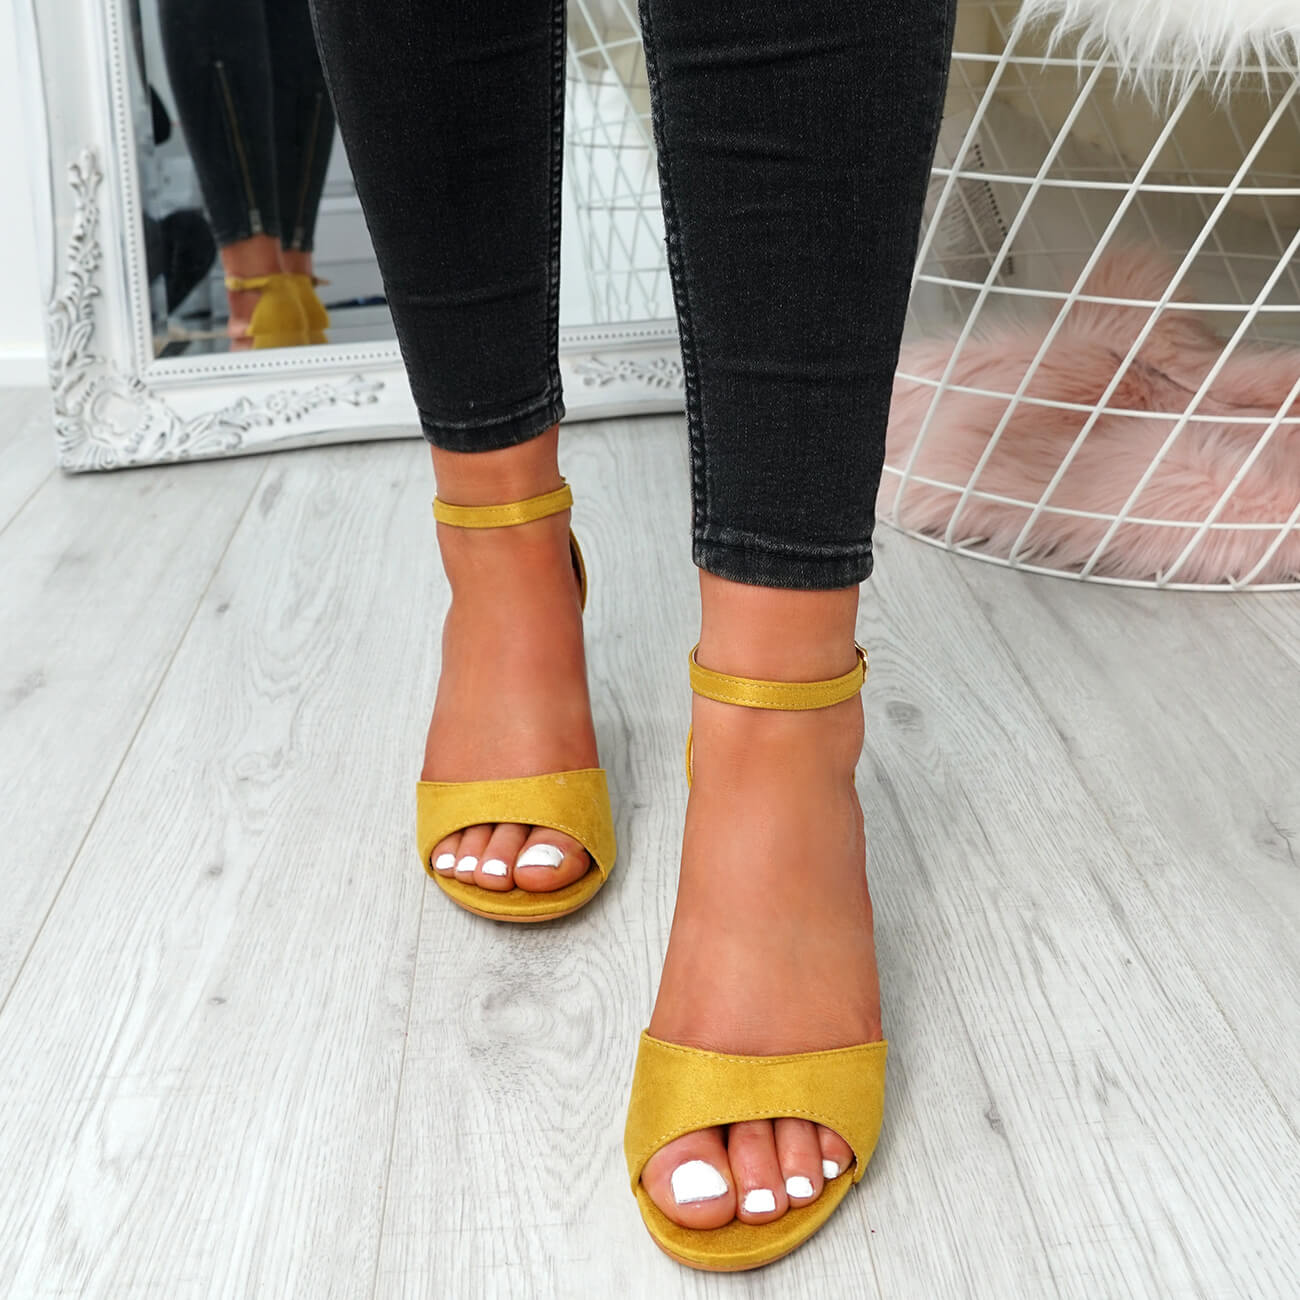 WOMENS-LADIES-ANKLE-STRAP-HIGH-BLOCK-HEEL-SANDALS-PEEP-TOE-PARTY-SHOES-SIZE thumbnail 32